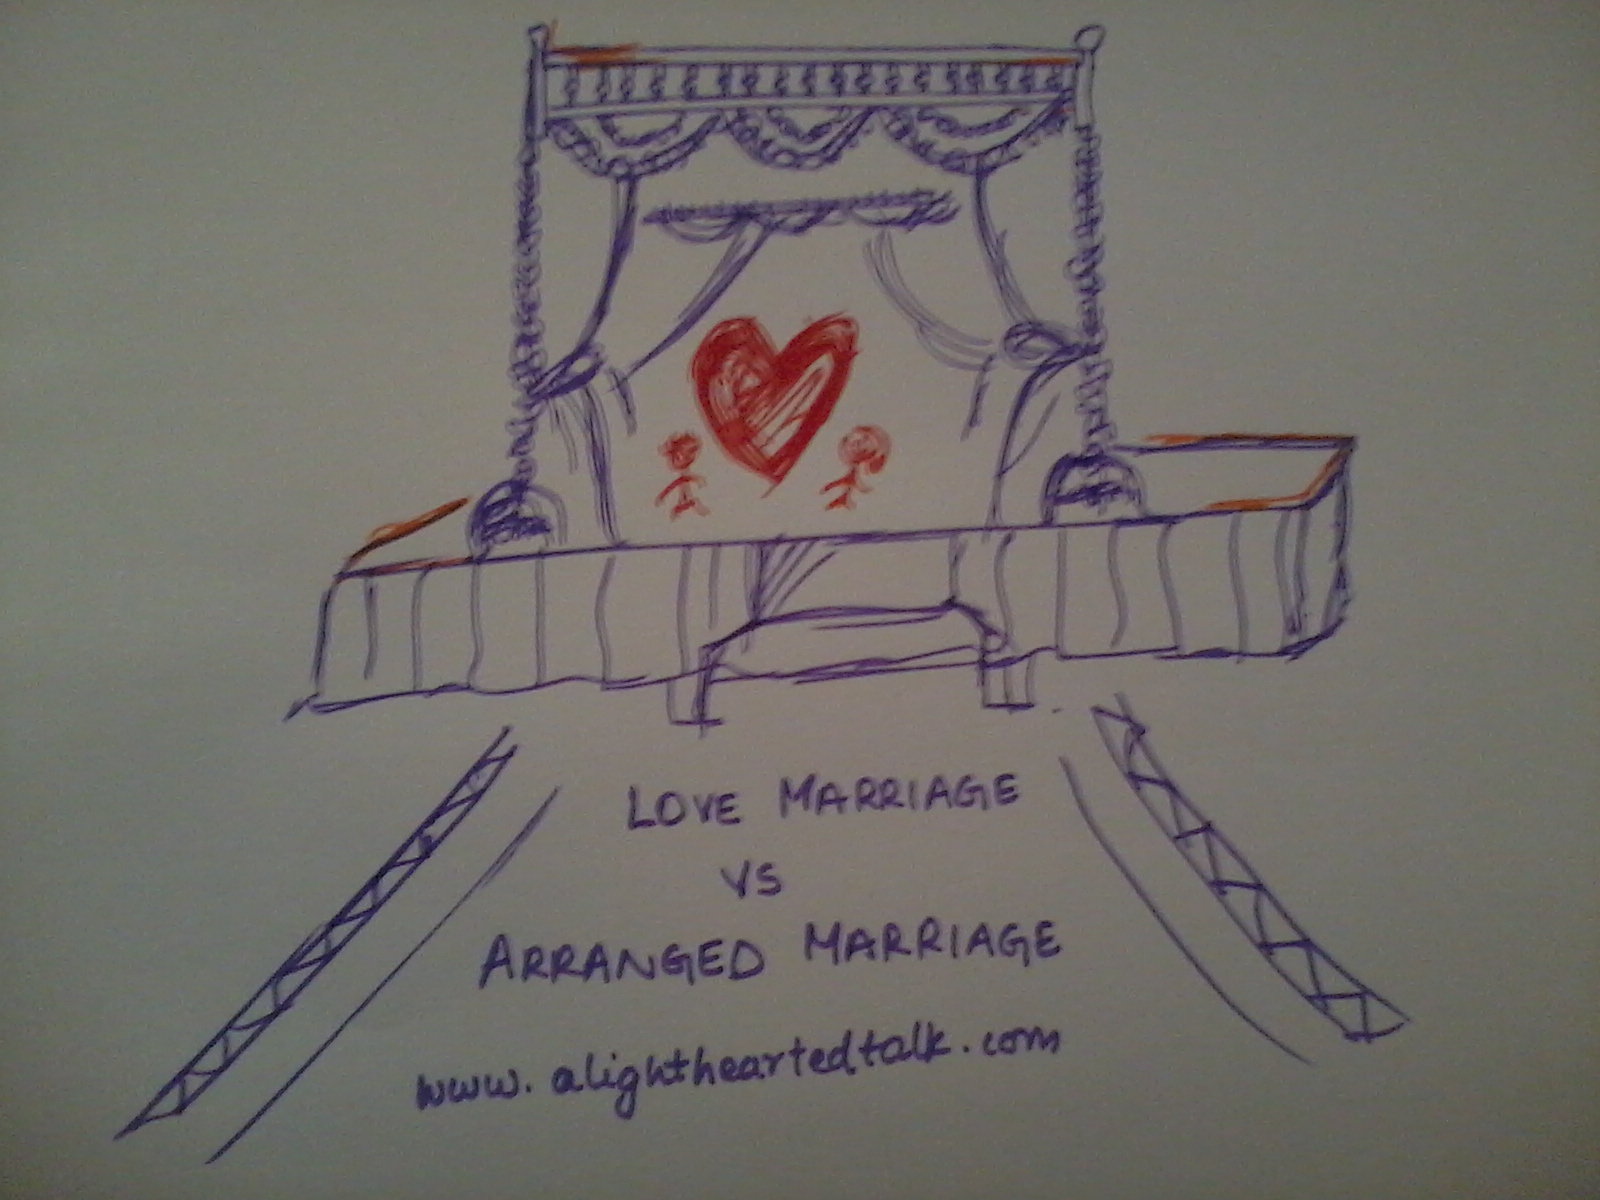 essay on love marriage or arranged marriage Arranged vs love marriages in india we will write a custom essay about 49% preferred arranged marriage while 33 per cent 'arranged love marriage' and a.